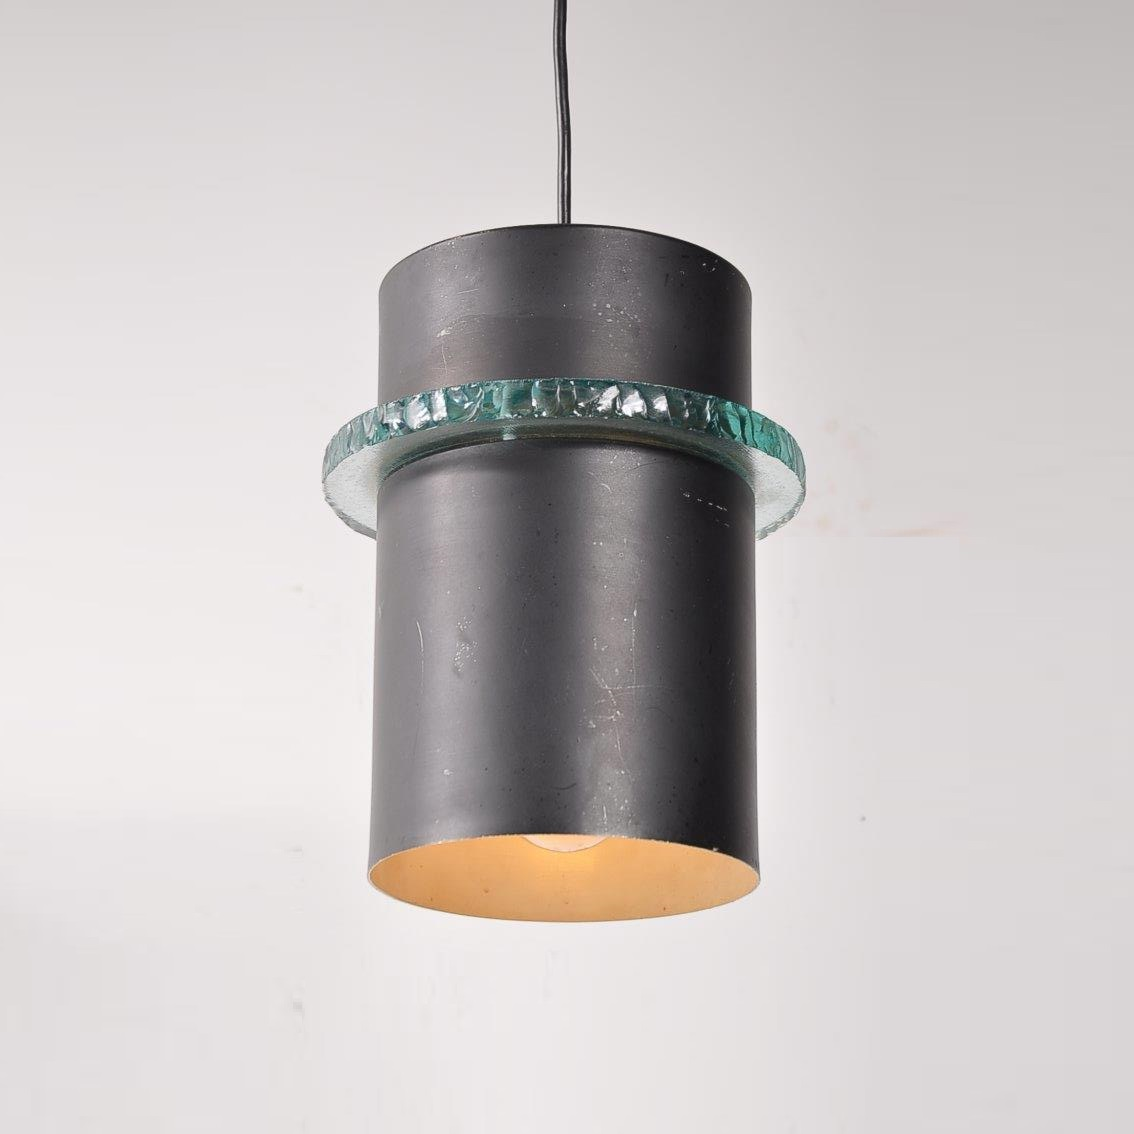 L4109 1960s Beautiful black metal hanging lamp with glass ring Hiemstra Evolux / Netherlands